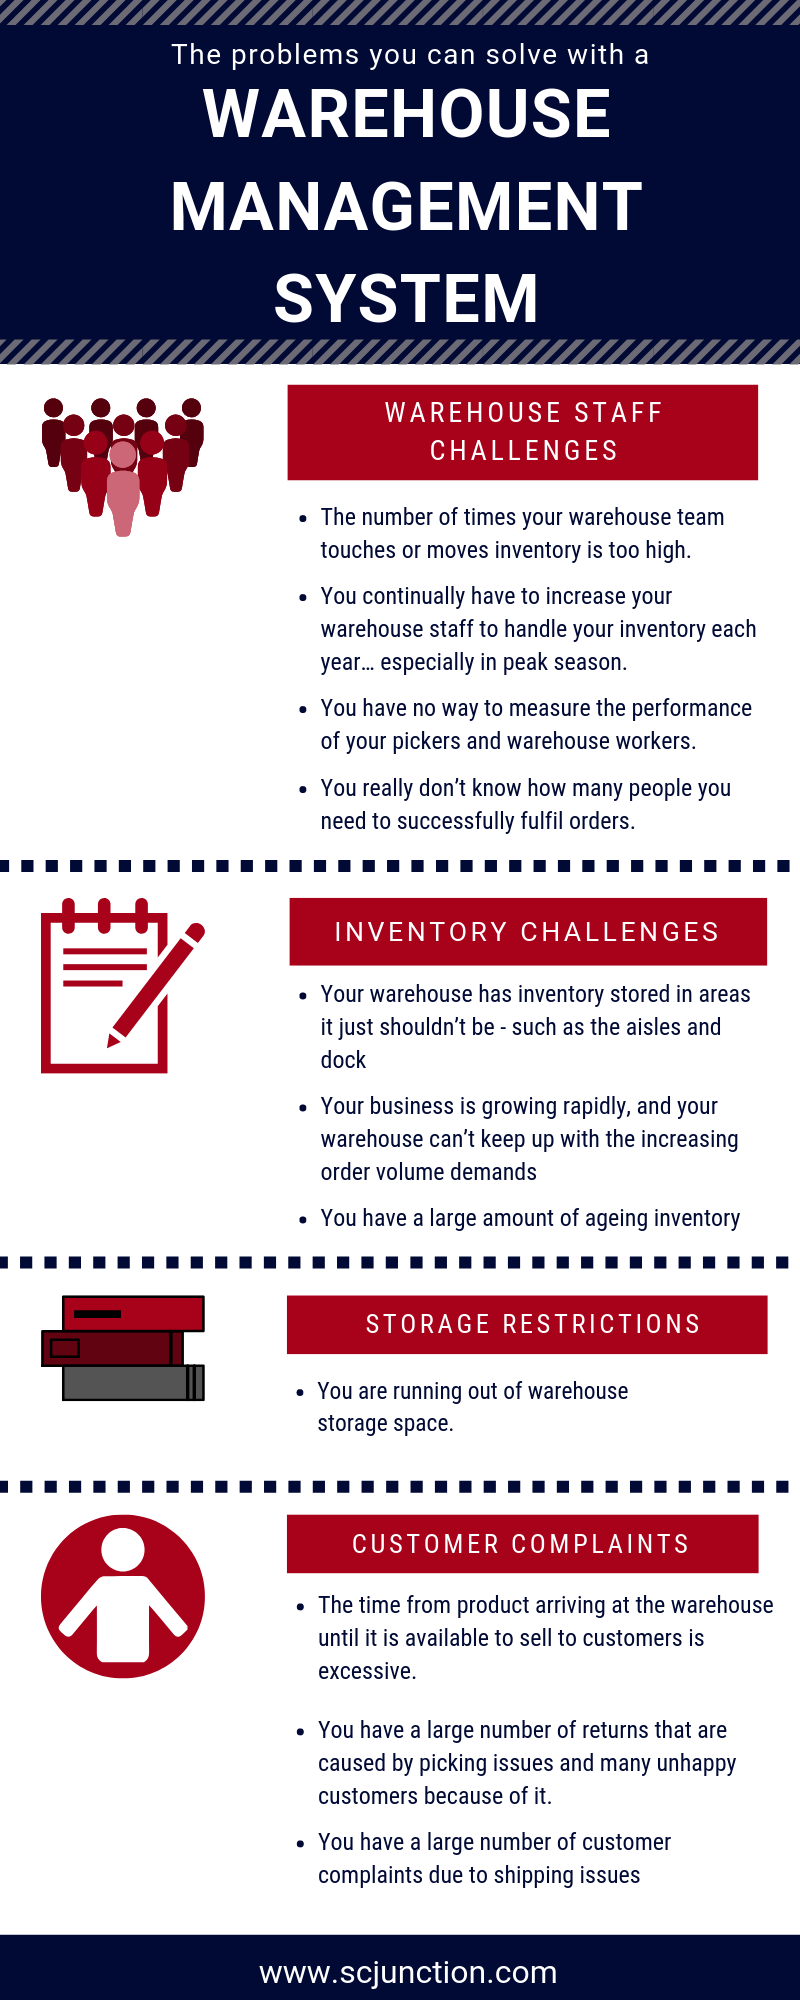 The Problems you can solve with a Warehouse Management system, including warehouse employee challenges, inventory, storage, and expansion hurdles, and customer service.